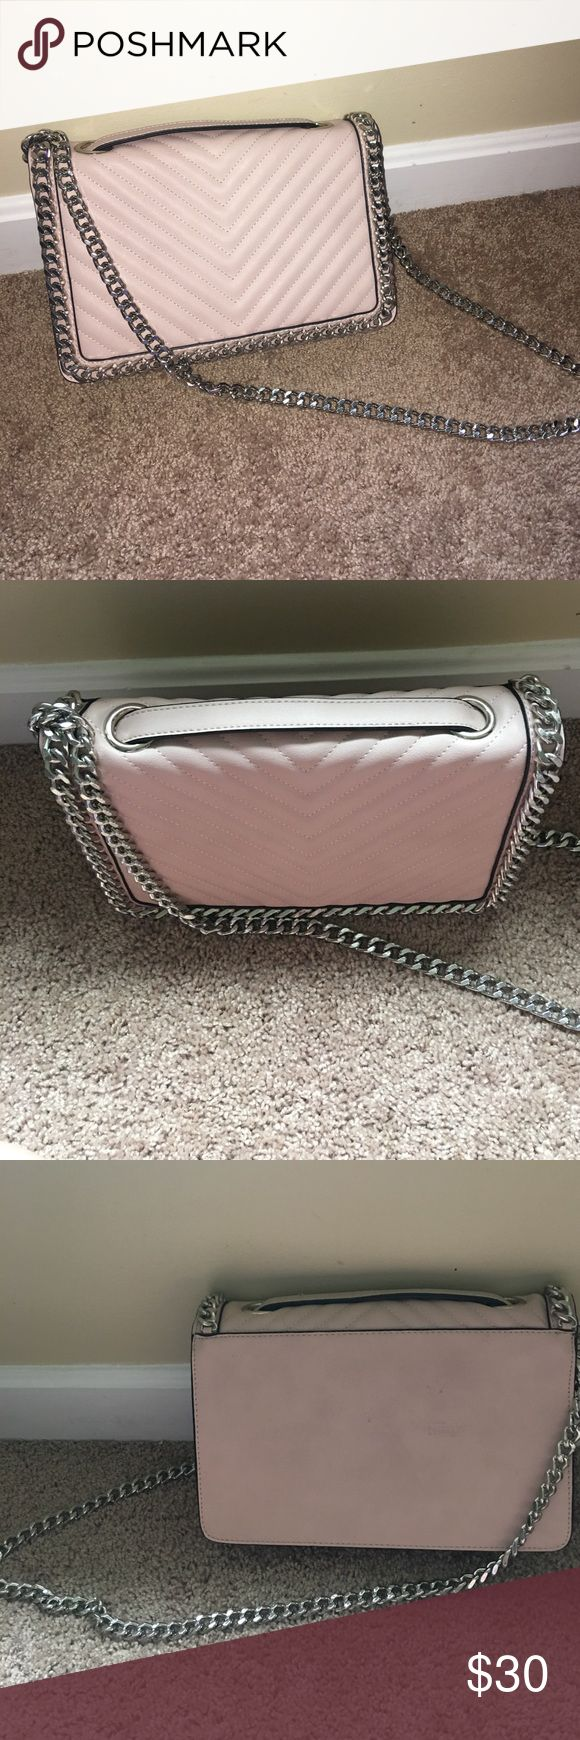 Blush Aldo purse with silver chain hardware Worn just once, blush purse from Aldo. Pretty quilted detailing in front/ reminds me of Rebecca minkoff style handbags. Really pretty and hot color for the season- I'm only getting rid of because I found a smaller one I like better! Aldo Bags Crossbody Bags